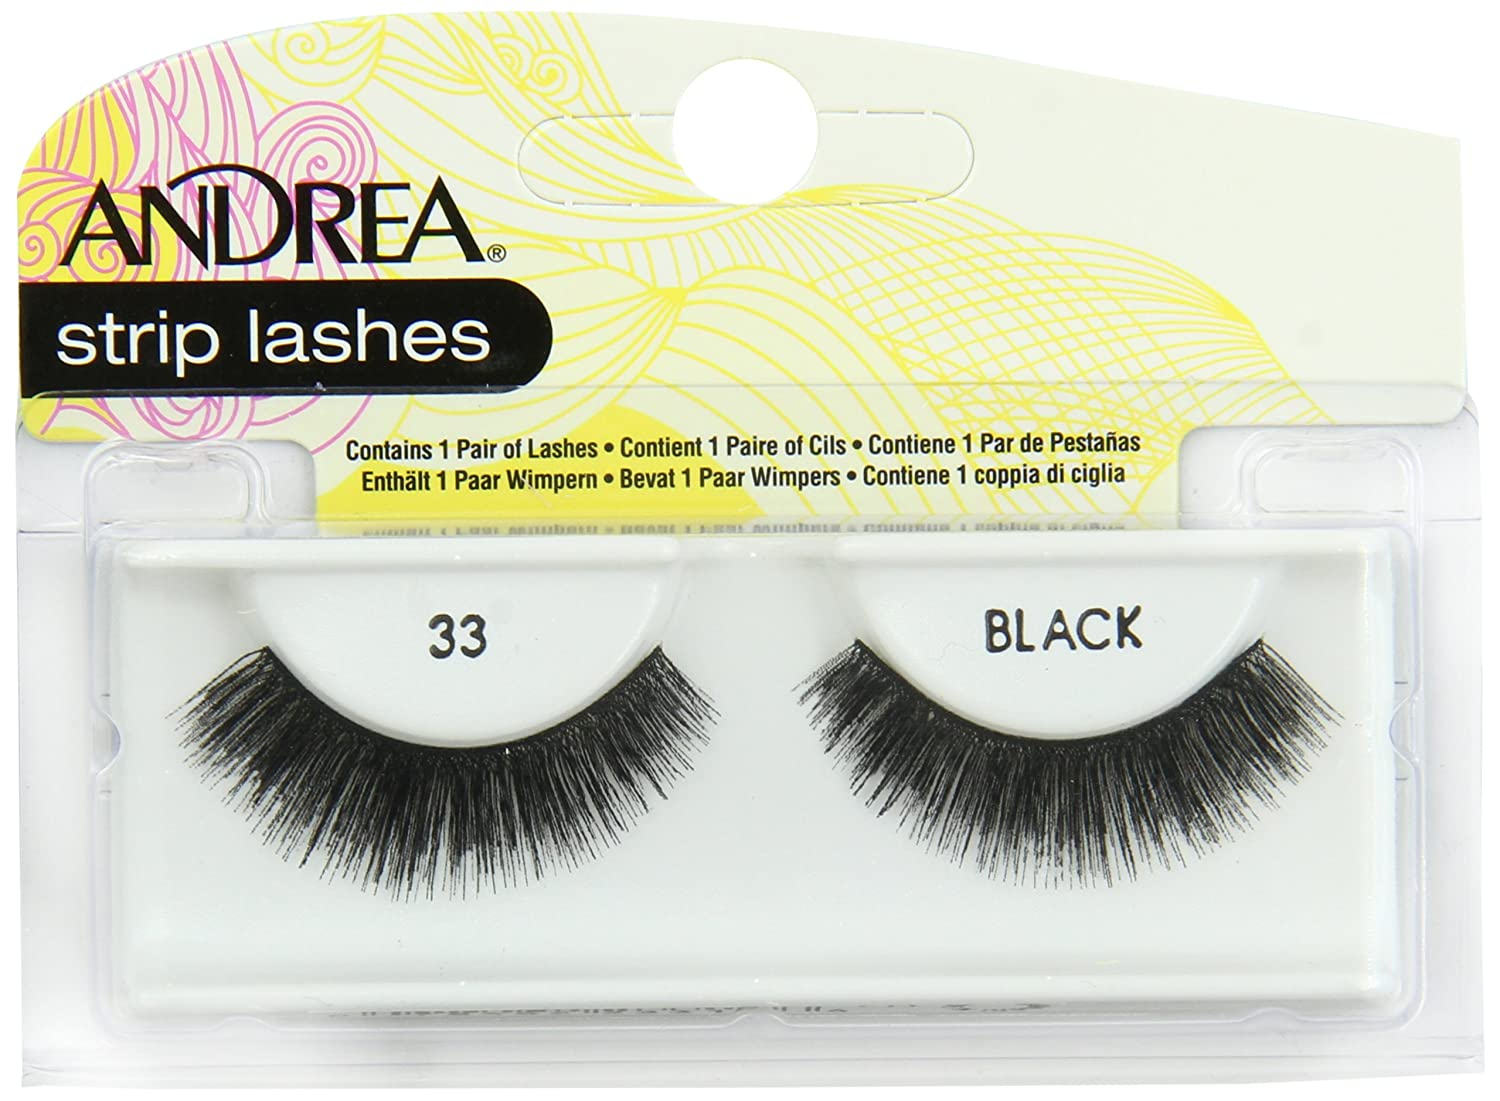 a9a56baf2e0 Amazon.com : Andrea Strip Lashes, Black [33] 1 pair (Pack of 4) : Fake  Eyelashes And Adhesives : Beauty